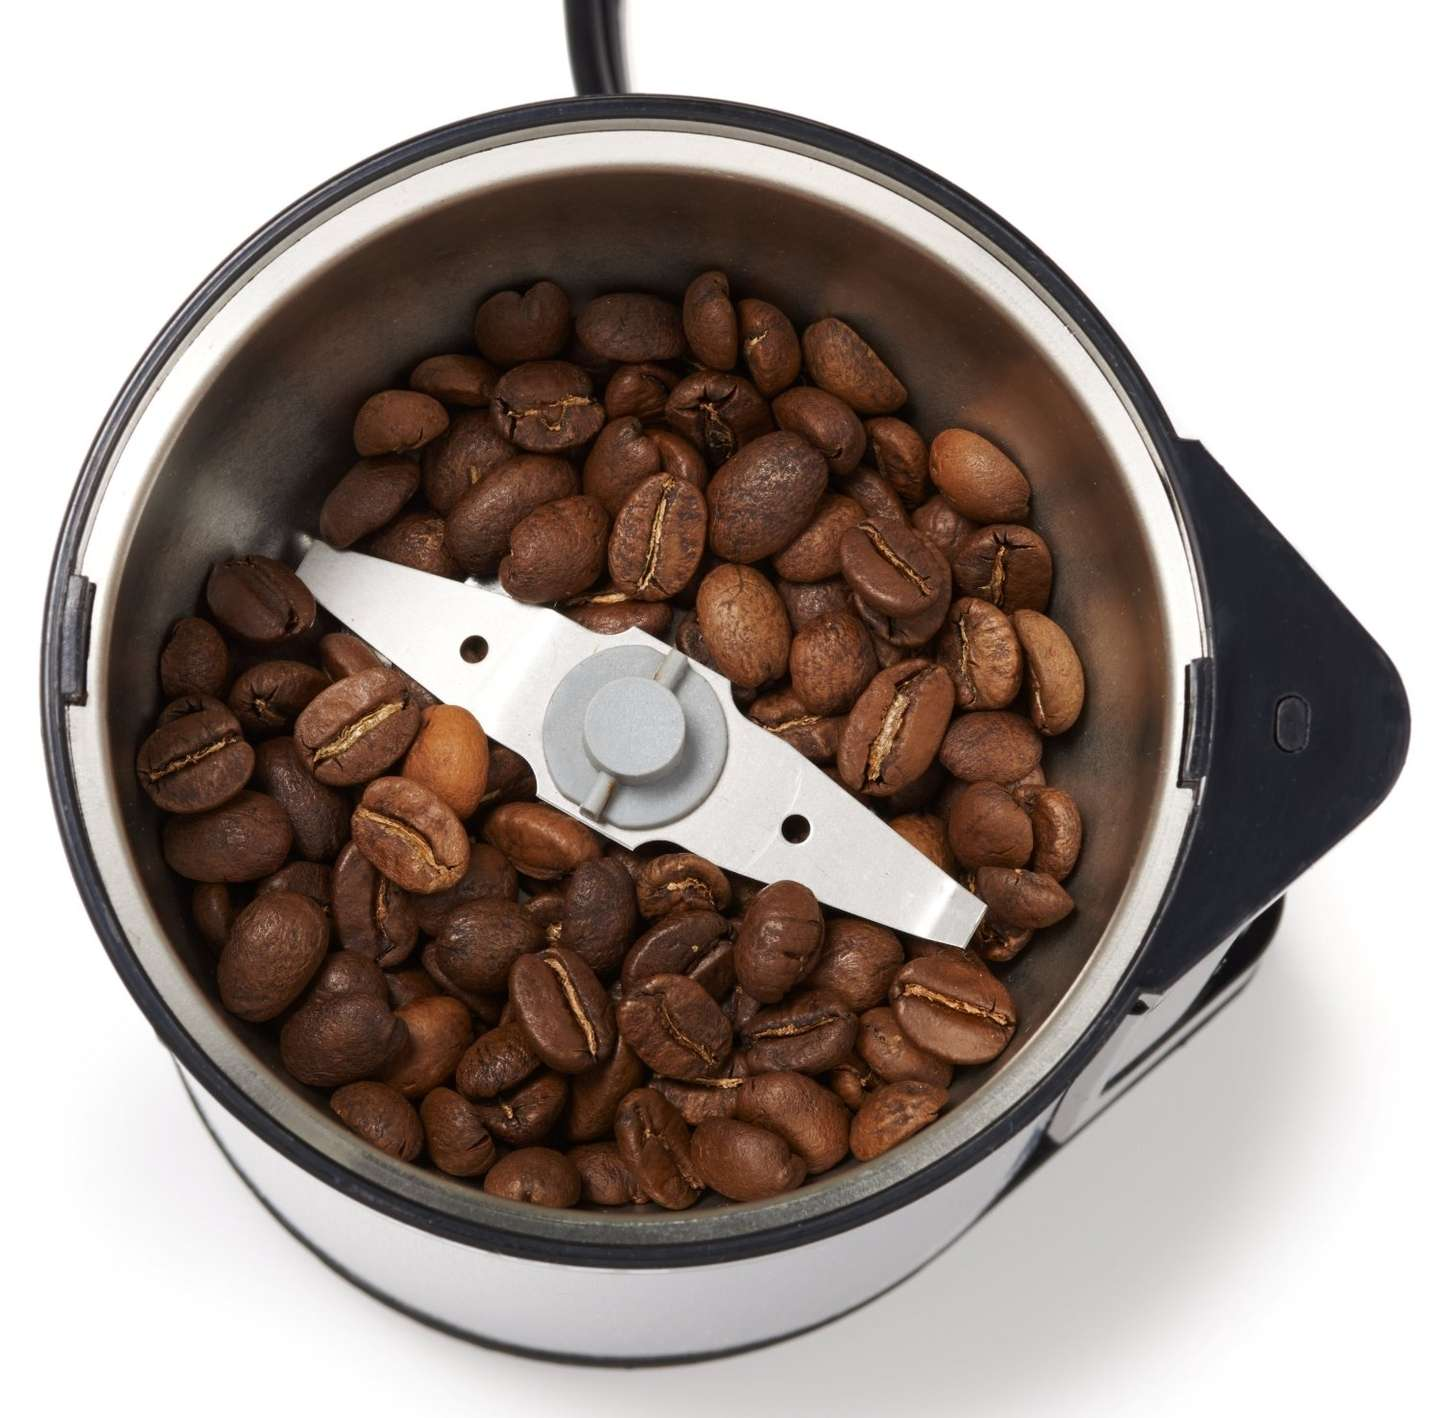 A blade style electric coffee grinder